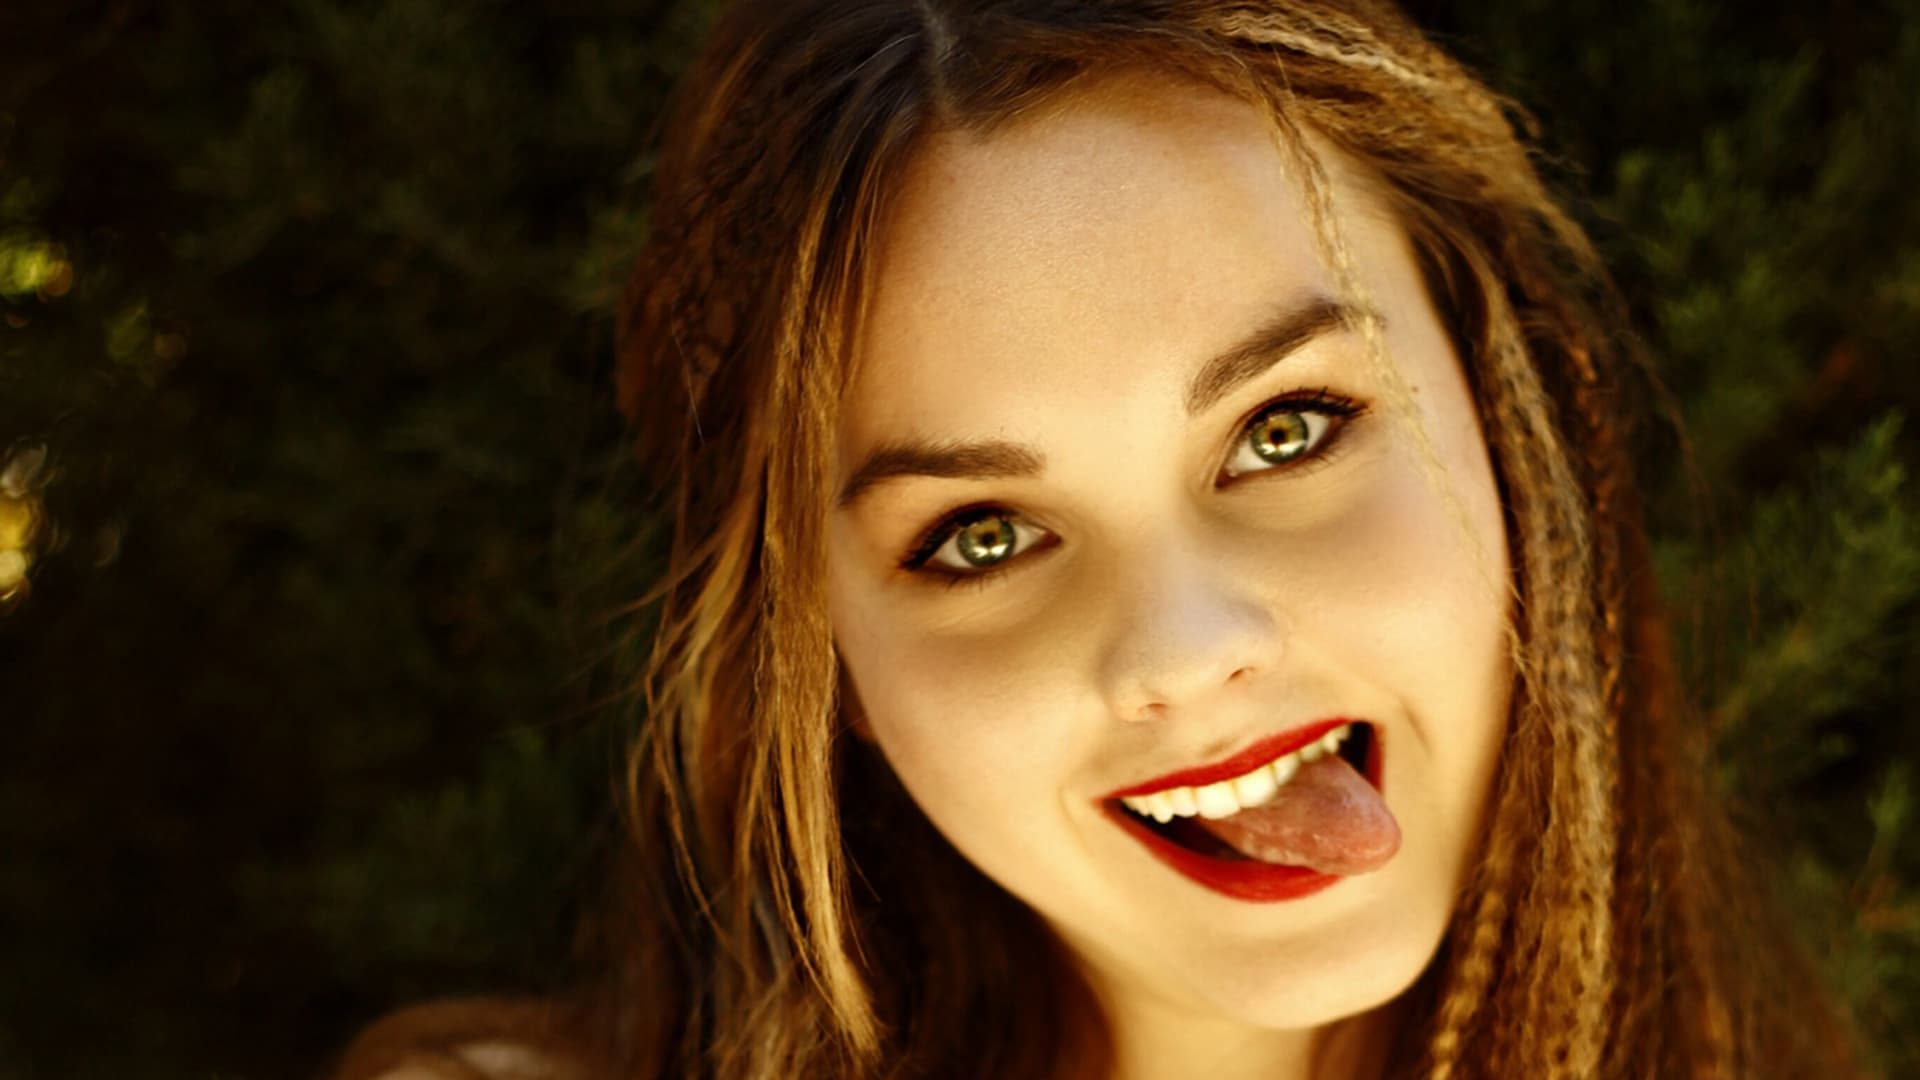 Download Wallpapers Cars Bikes Liana Liberato Wallpapers Hd High Quality Resolution Download